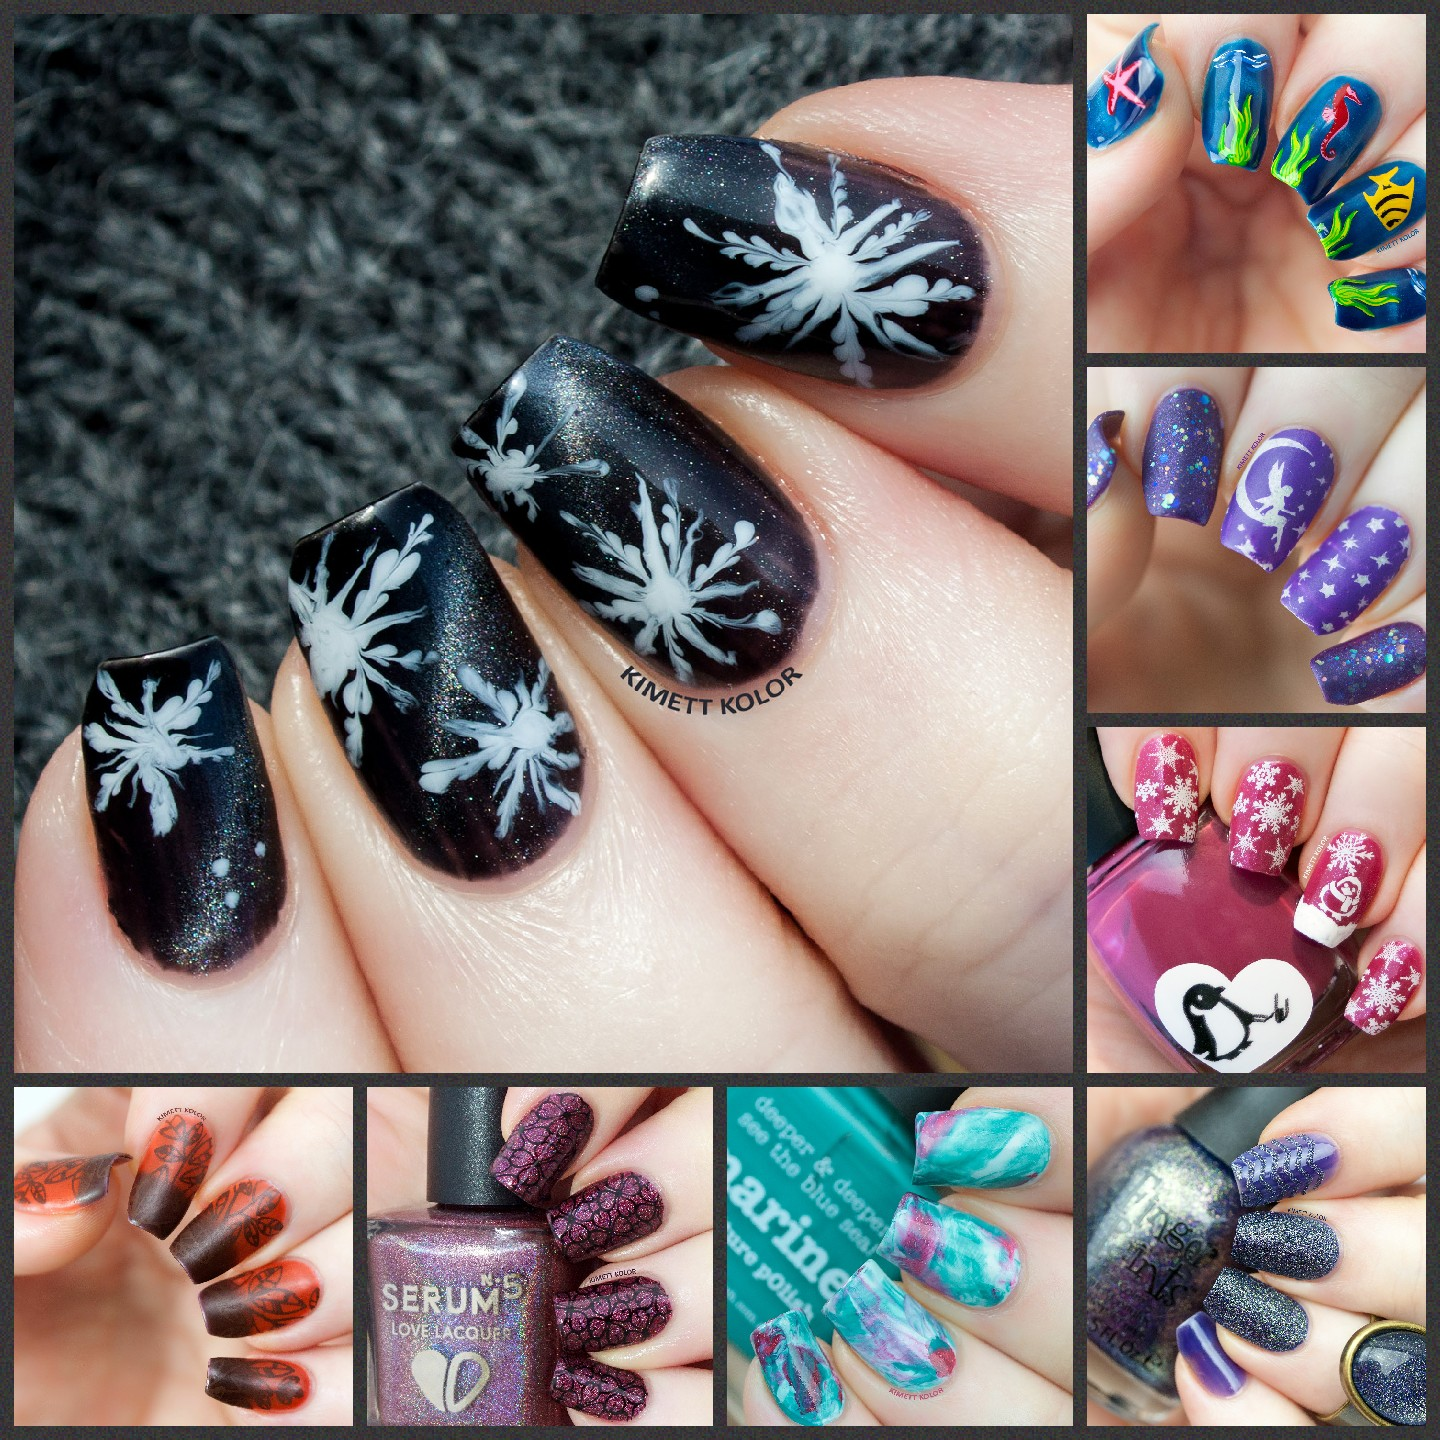 Kimett Kolor Nail Art Collage